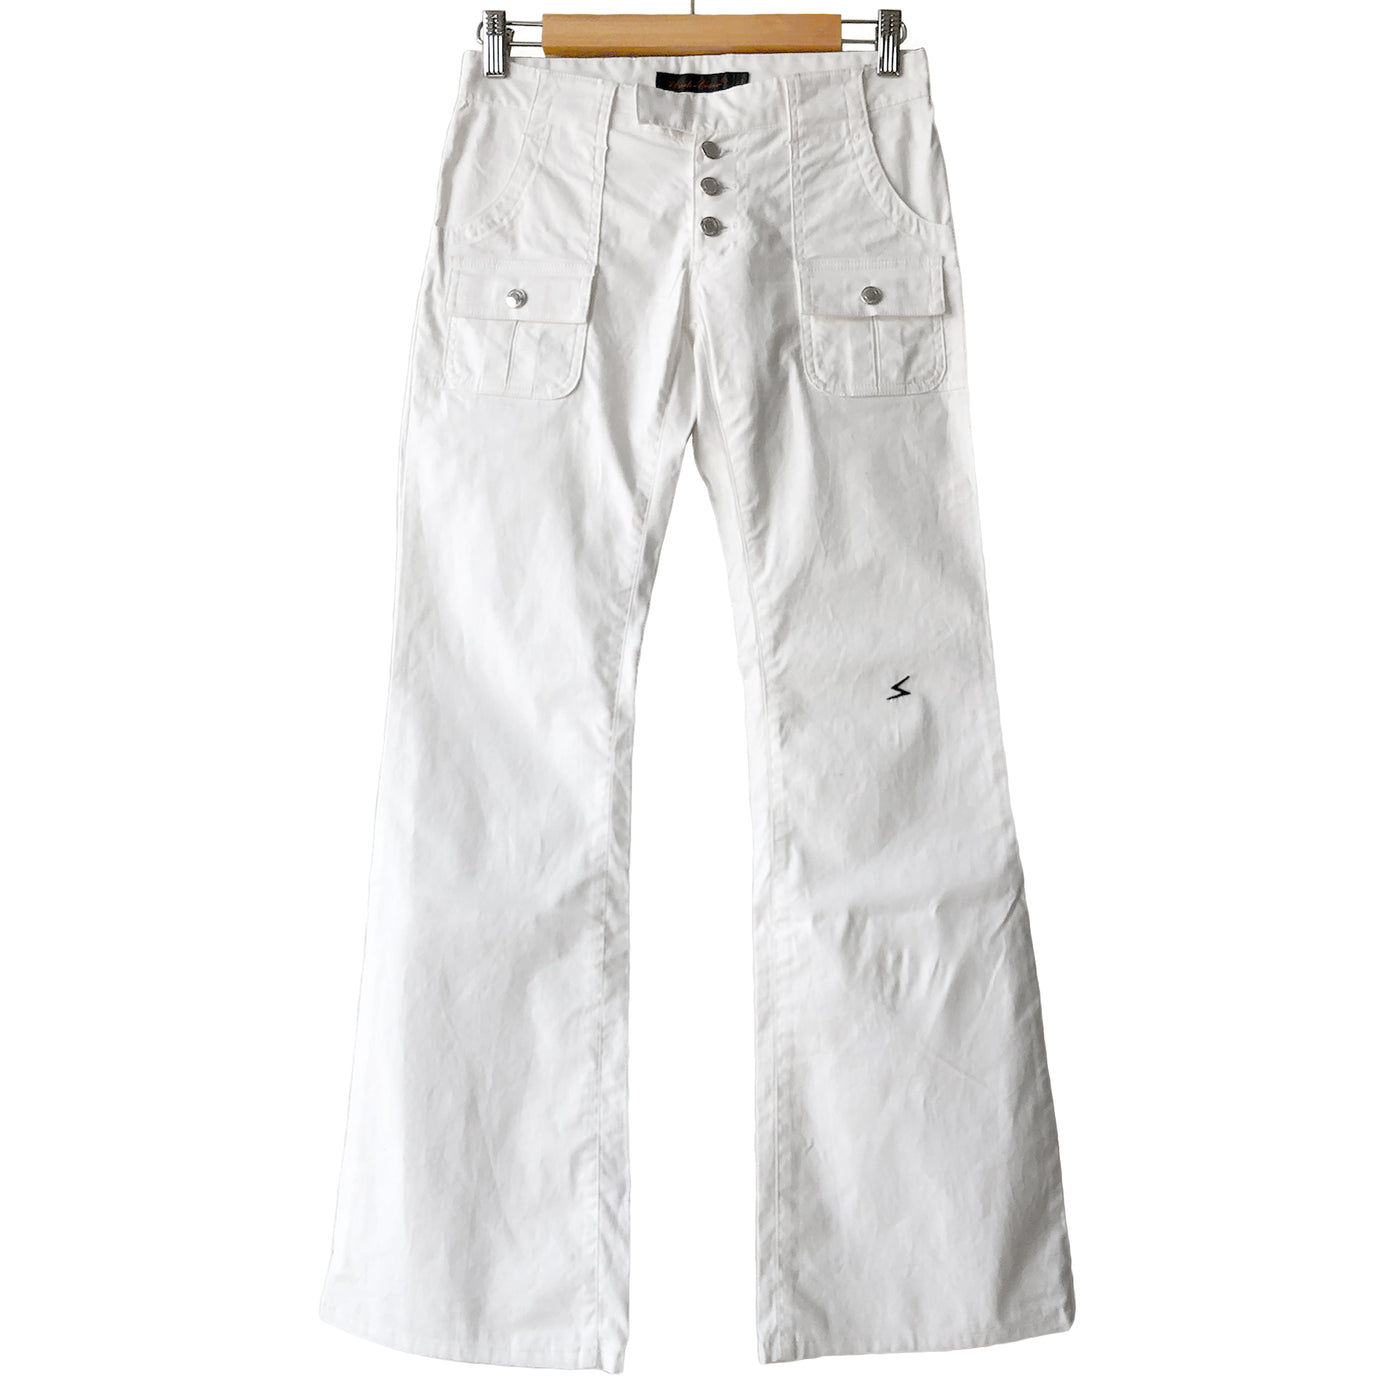 Undercover Bush Flared Cargo Trouser - SS06